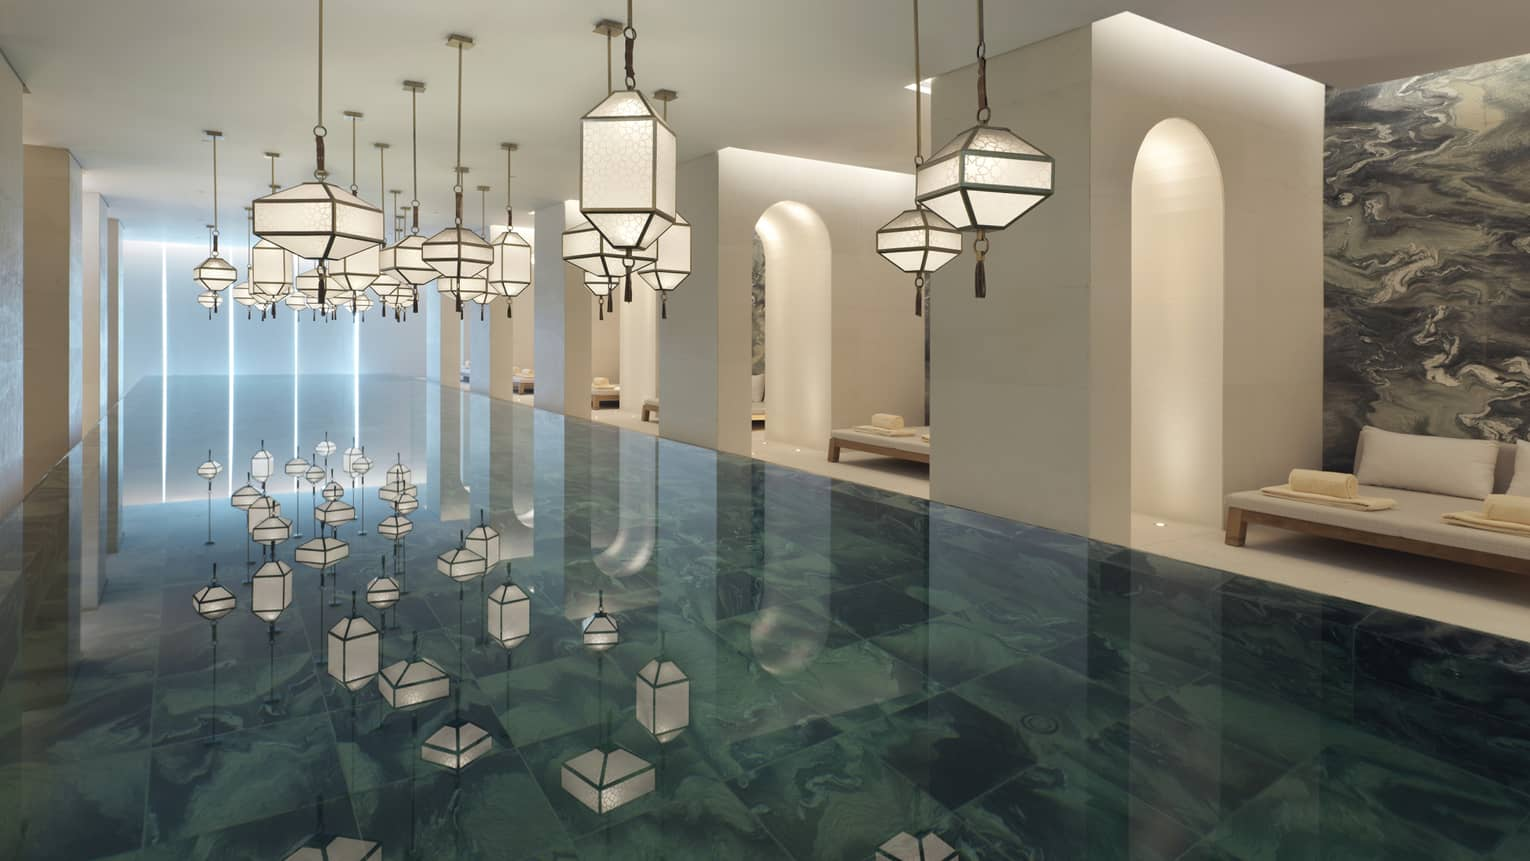 Several modern white lanterns hanging above Indoor Spa Pool, reflected on water